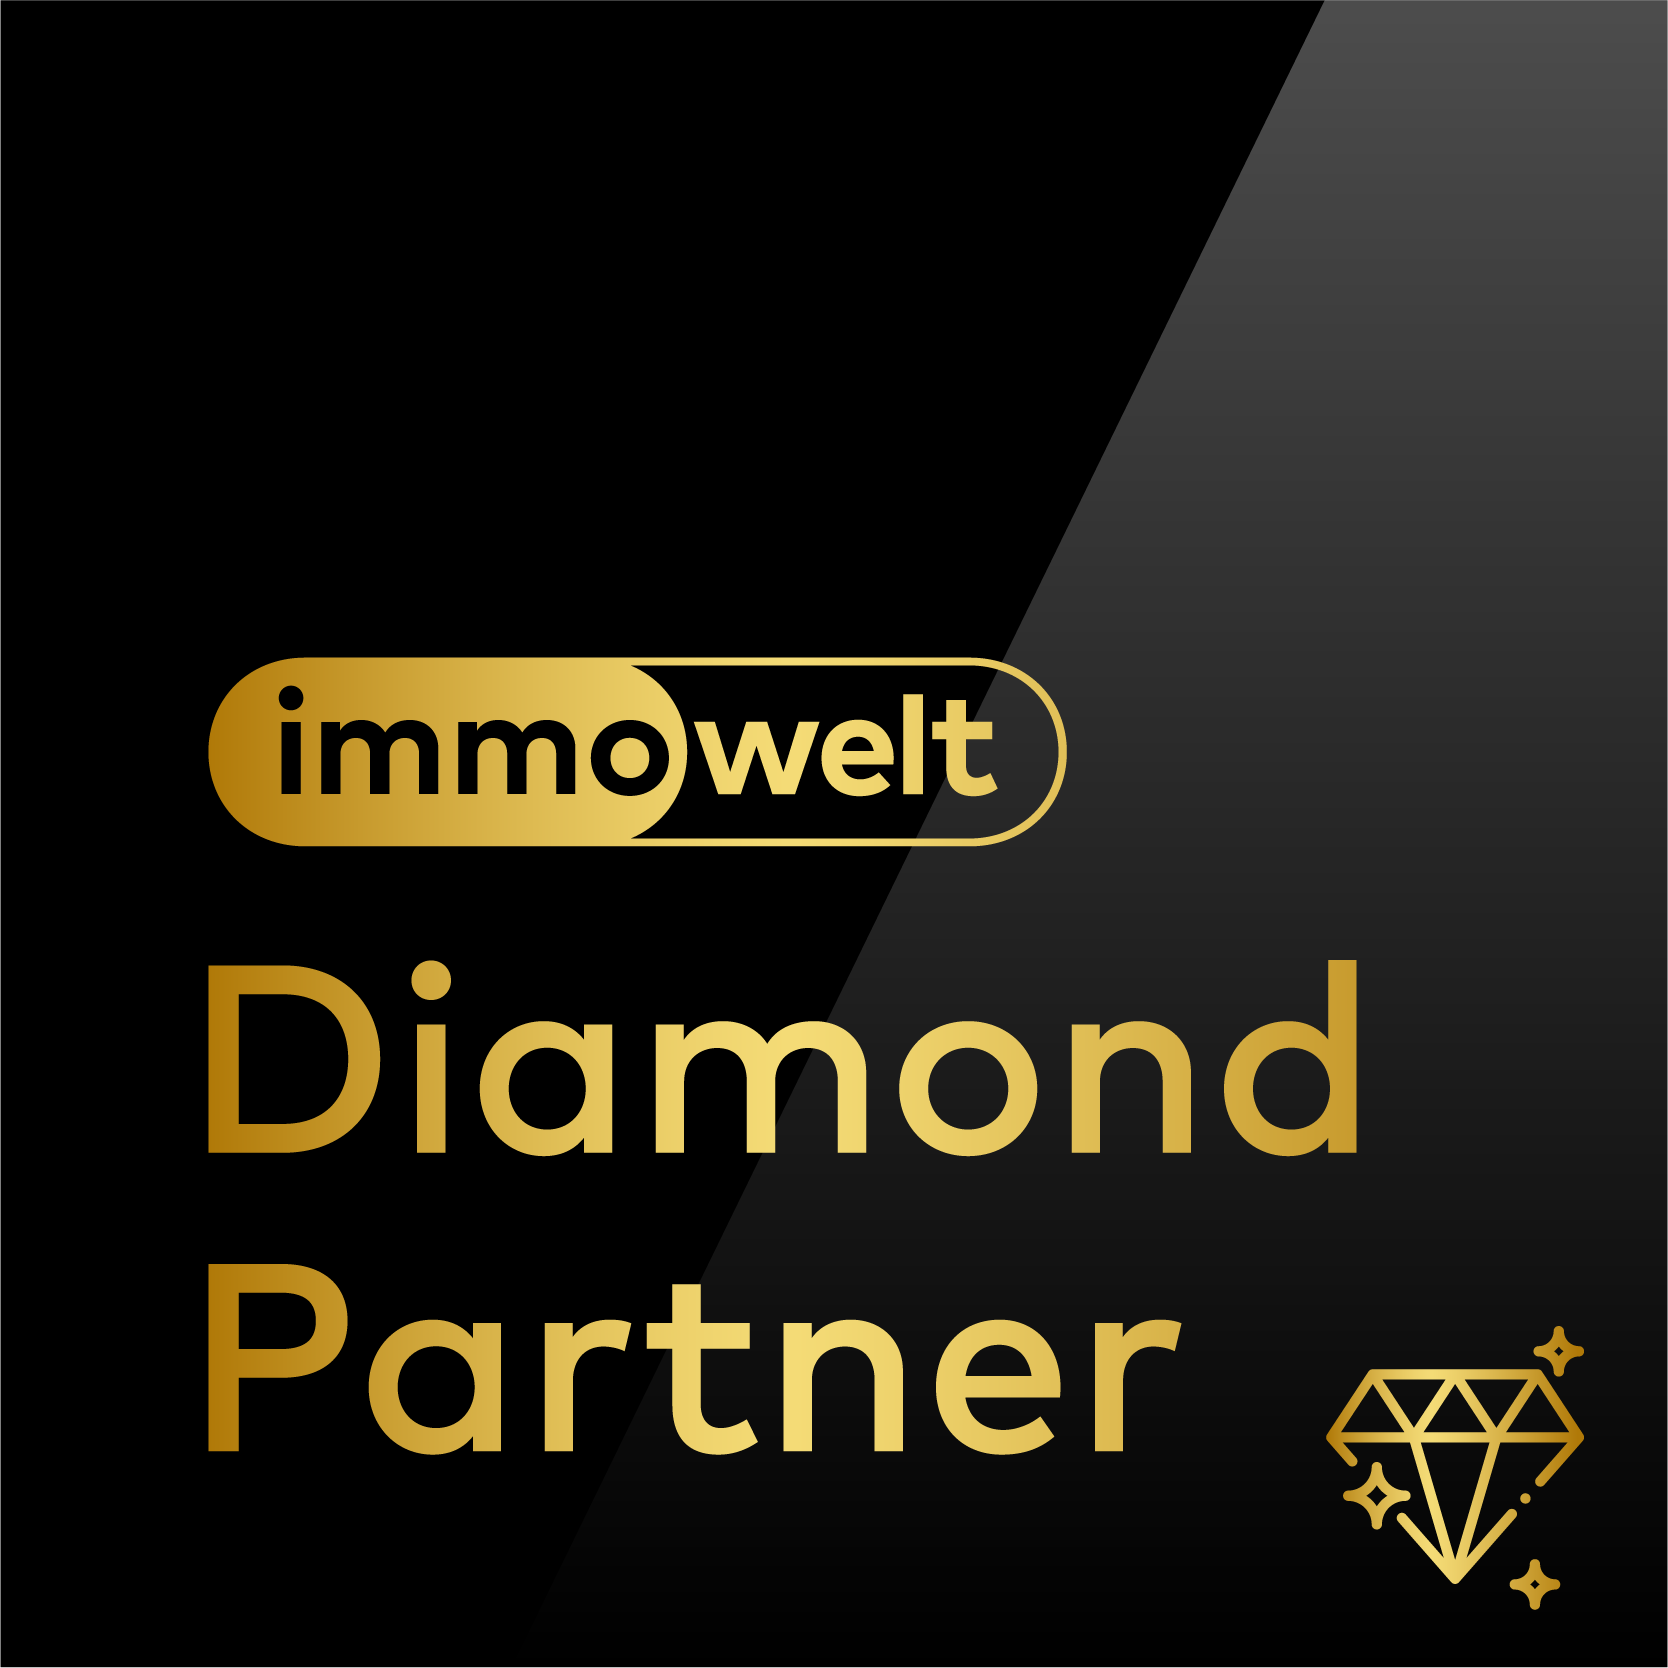 Immowelt-Diamond-Partner HUNDERTRAUM Immobilien - Christian Oster